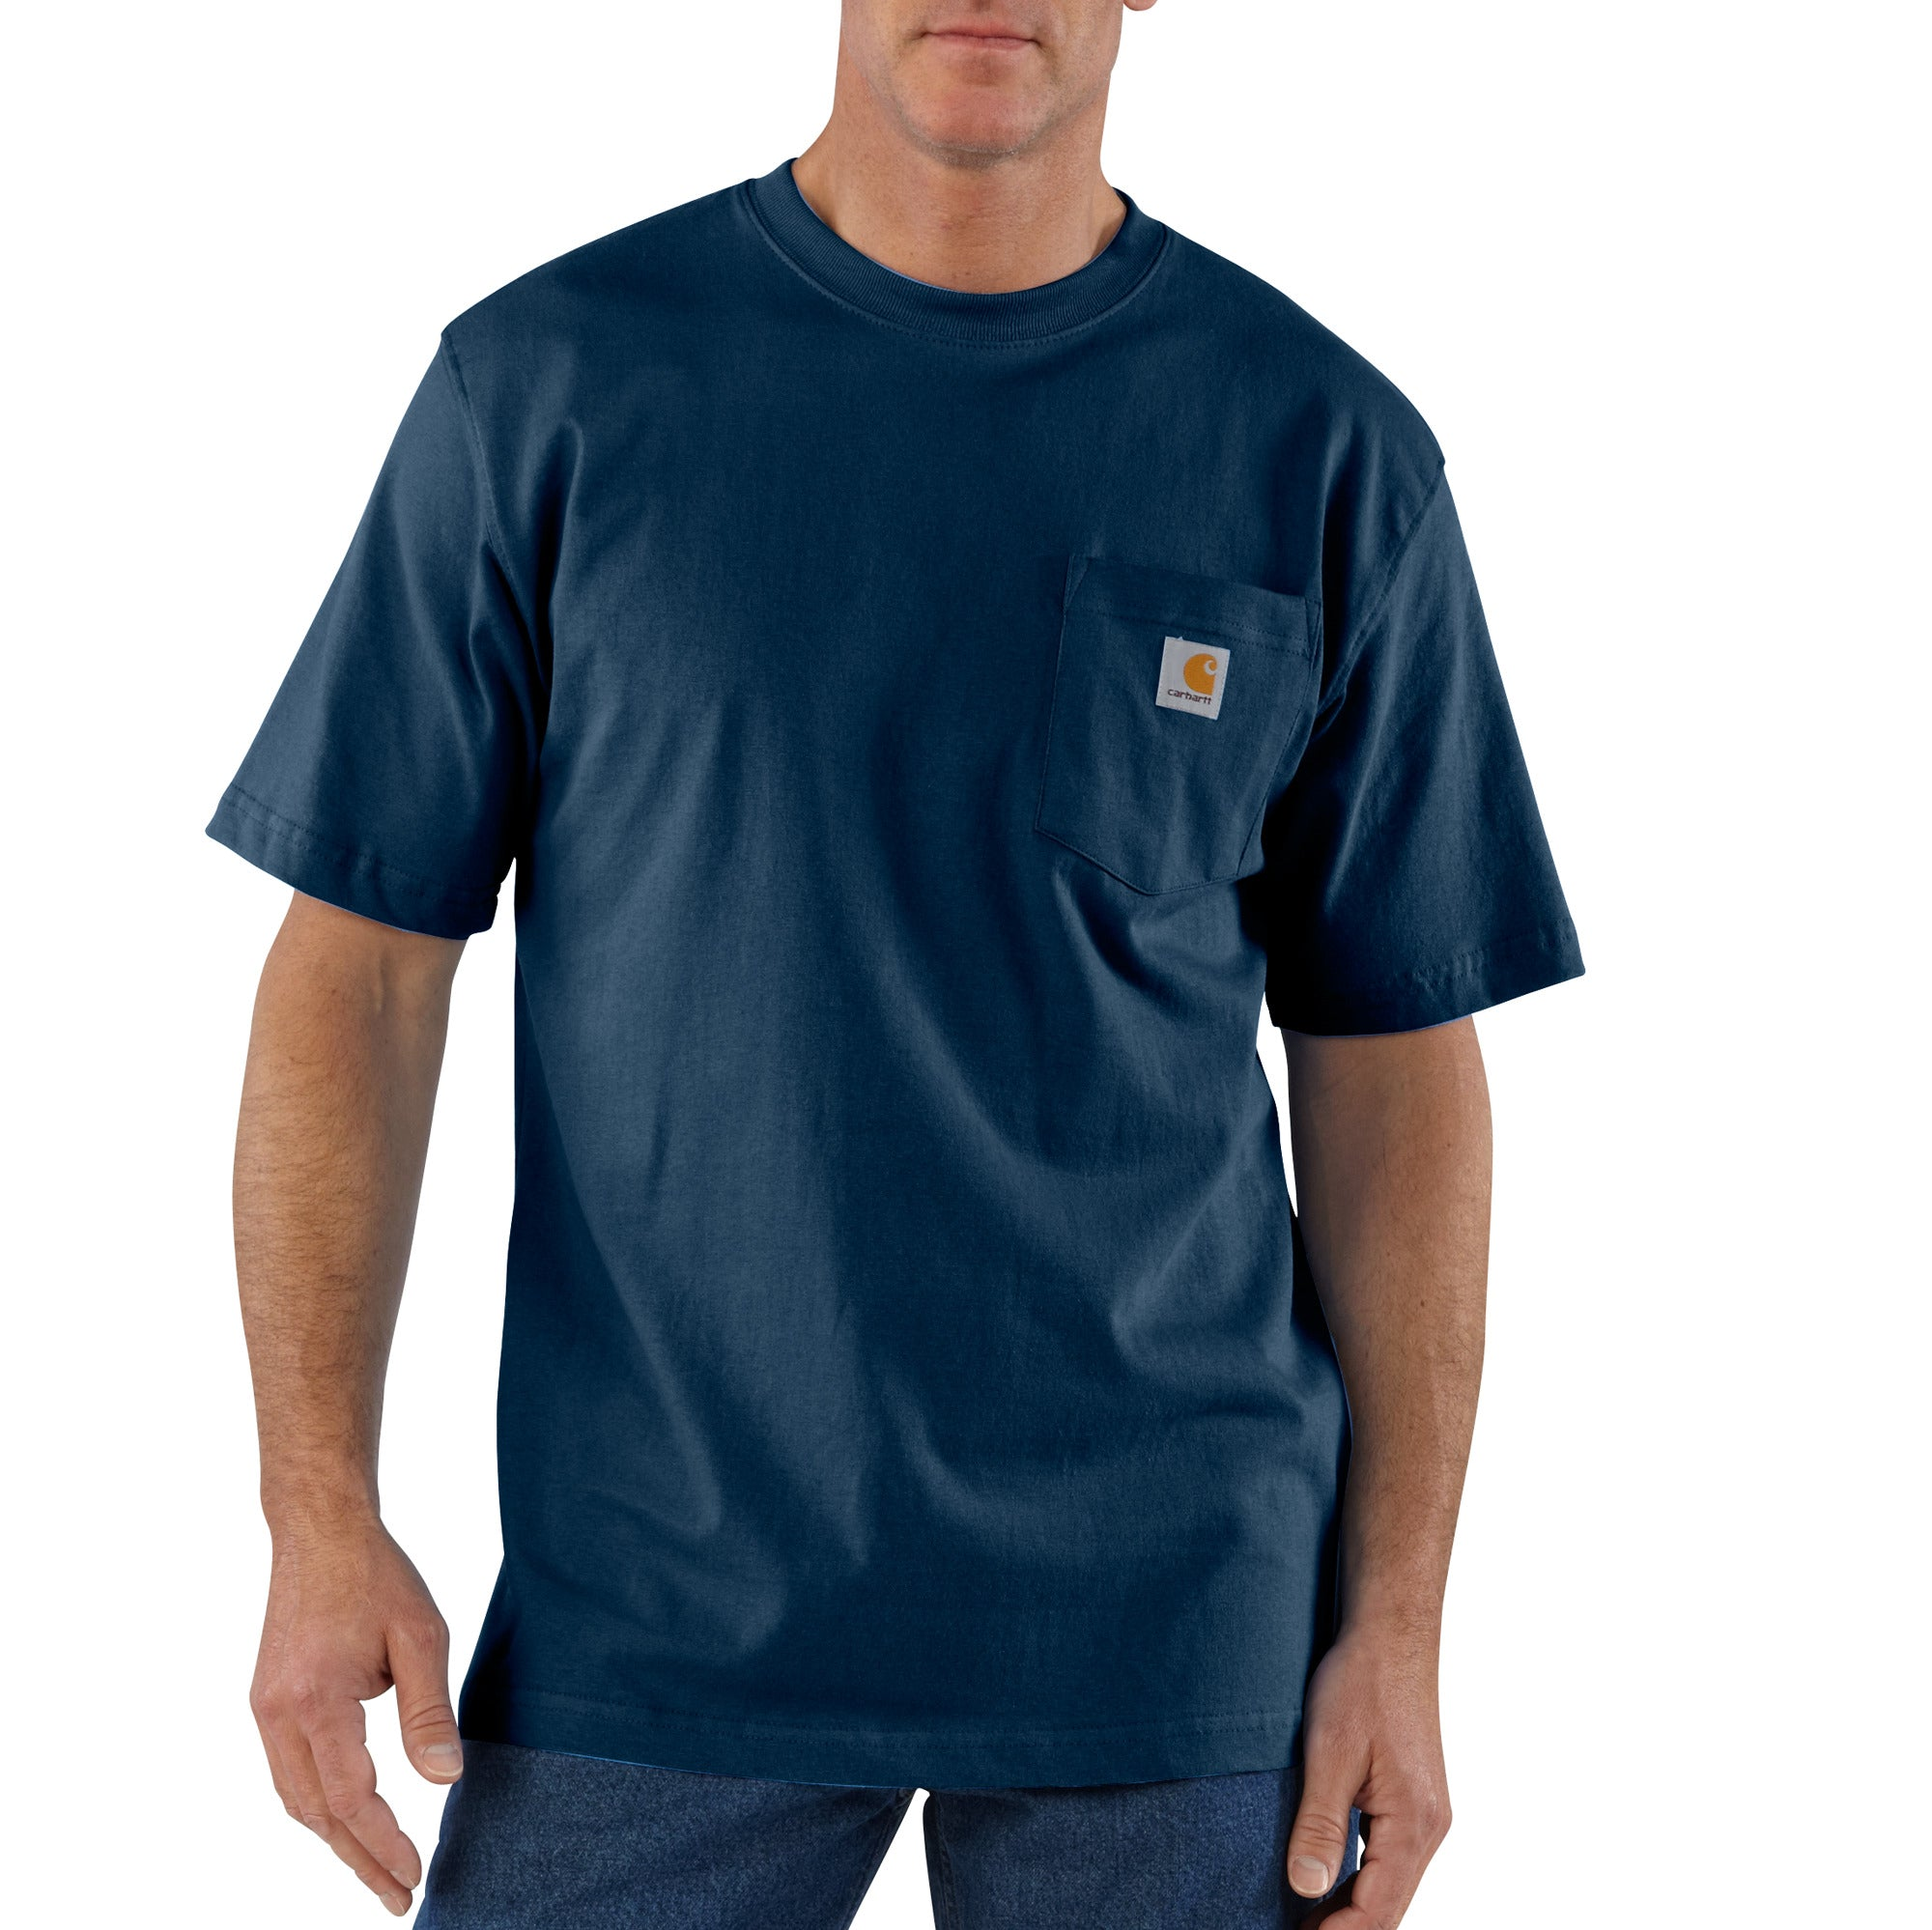 'Carhartt' Men's Workwear Heavyweight Pocket T-Shirt - Navy